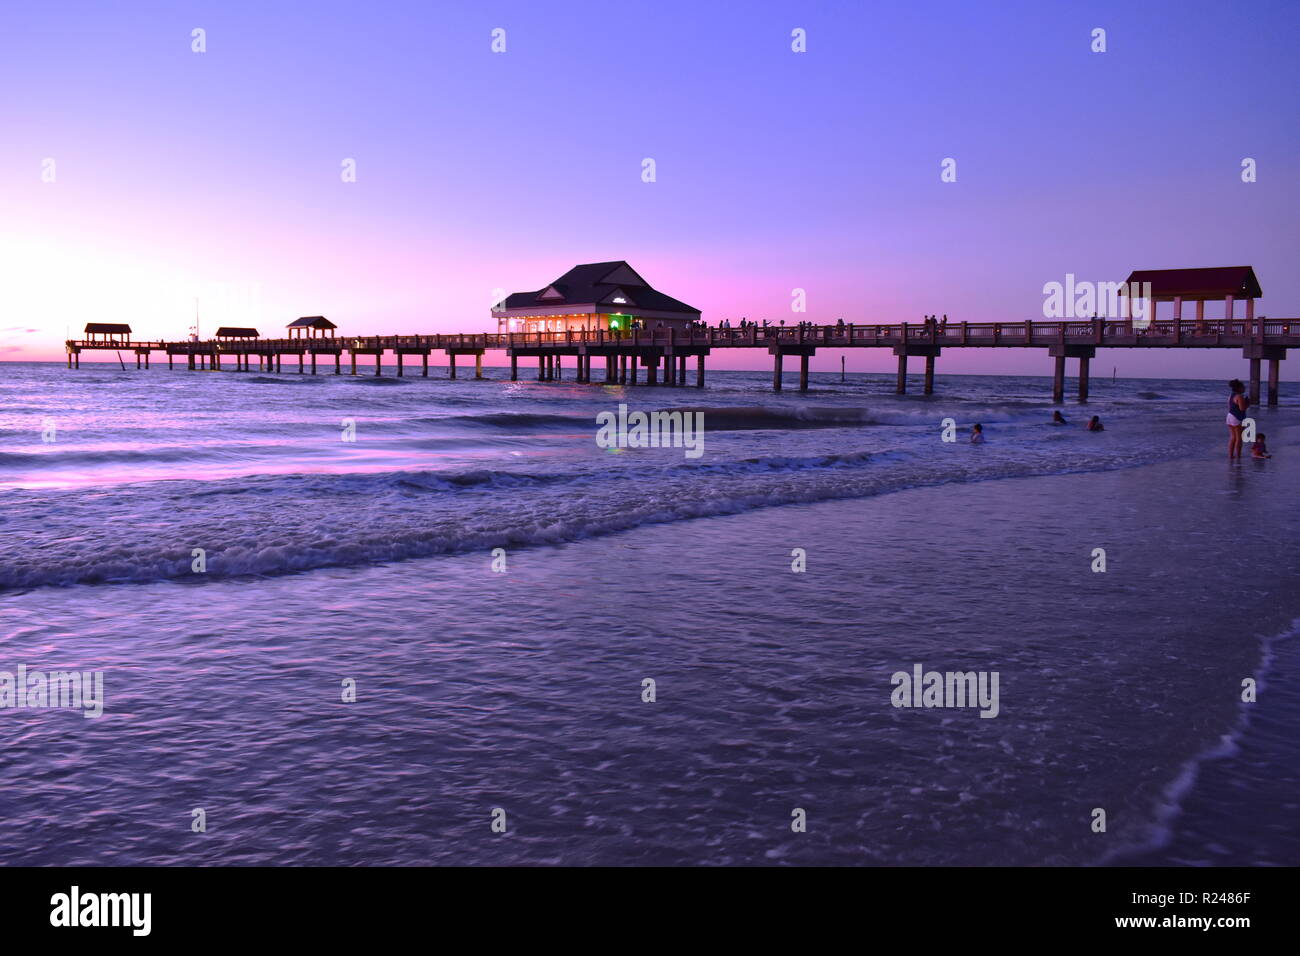 Clearwater, Florida. October 21,2018 Panoramic view of Pier 60 on magenta sunset background at Cleawater Beach. - Stock Image